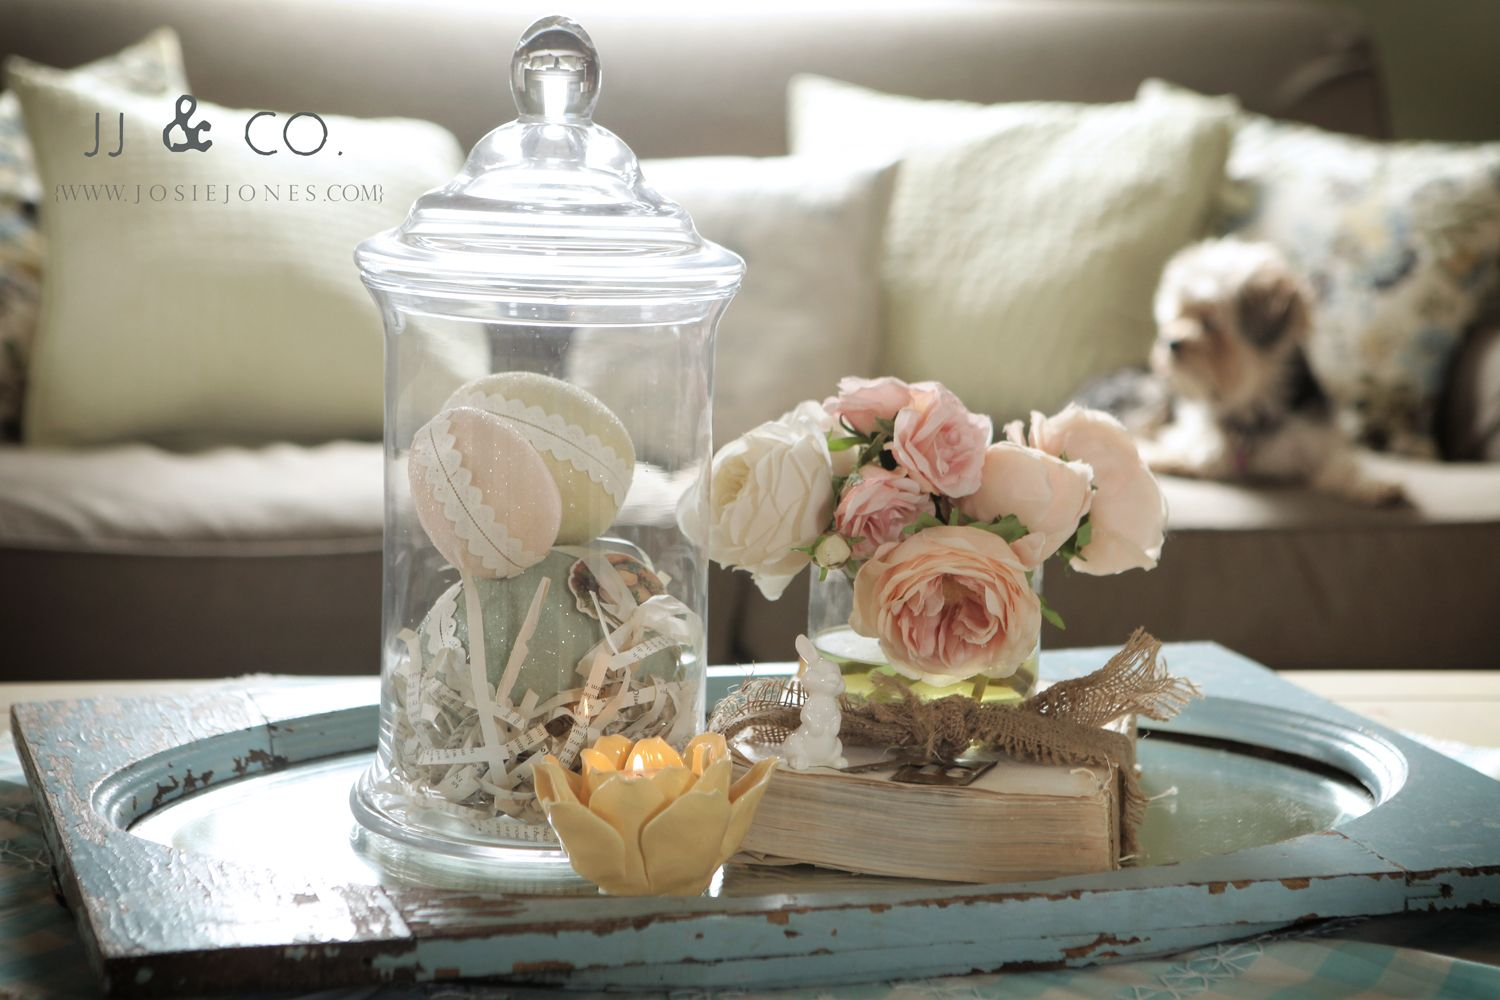 Easter Coffee Table Decoration Decorations Awesome Centerpiece Feats Pink Roses Bouquet And Eggs